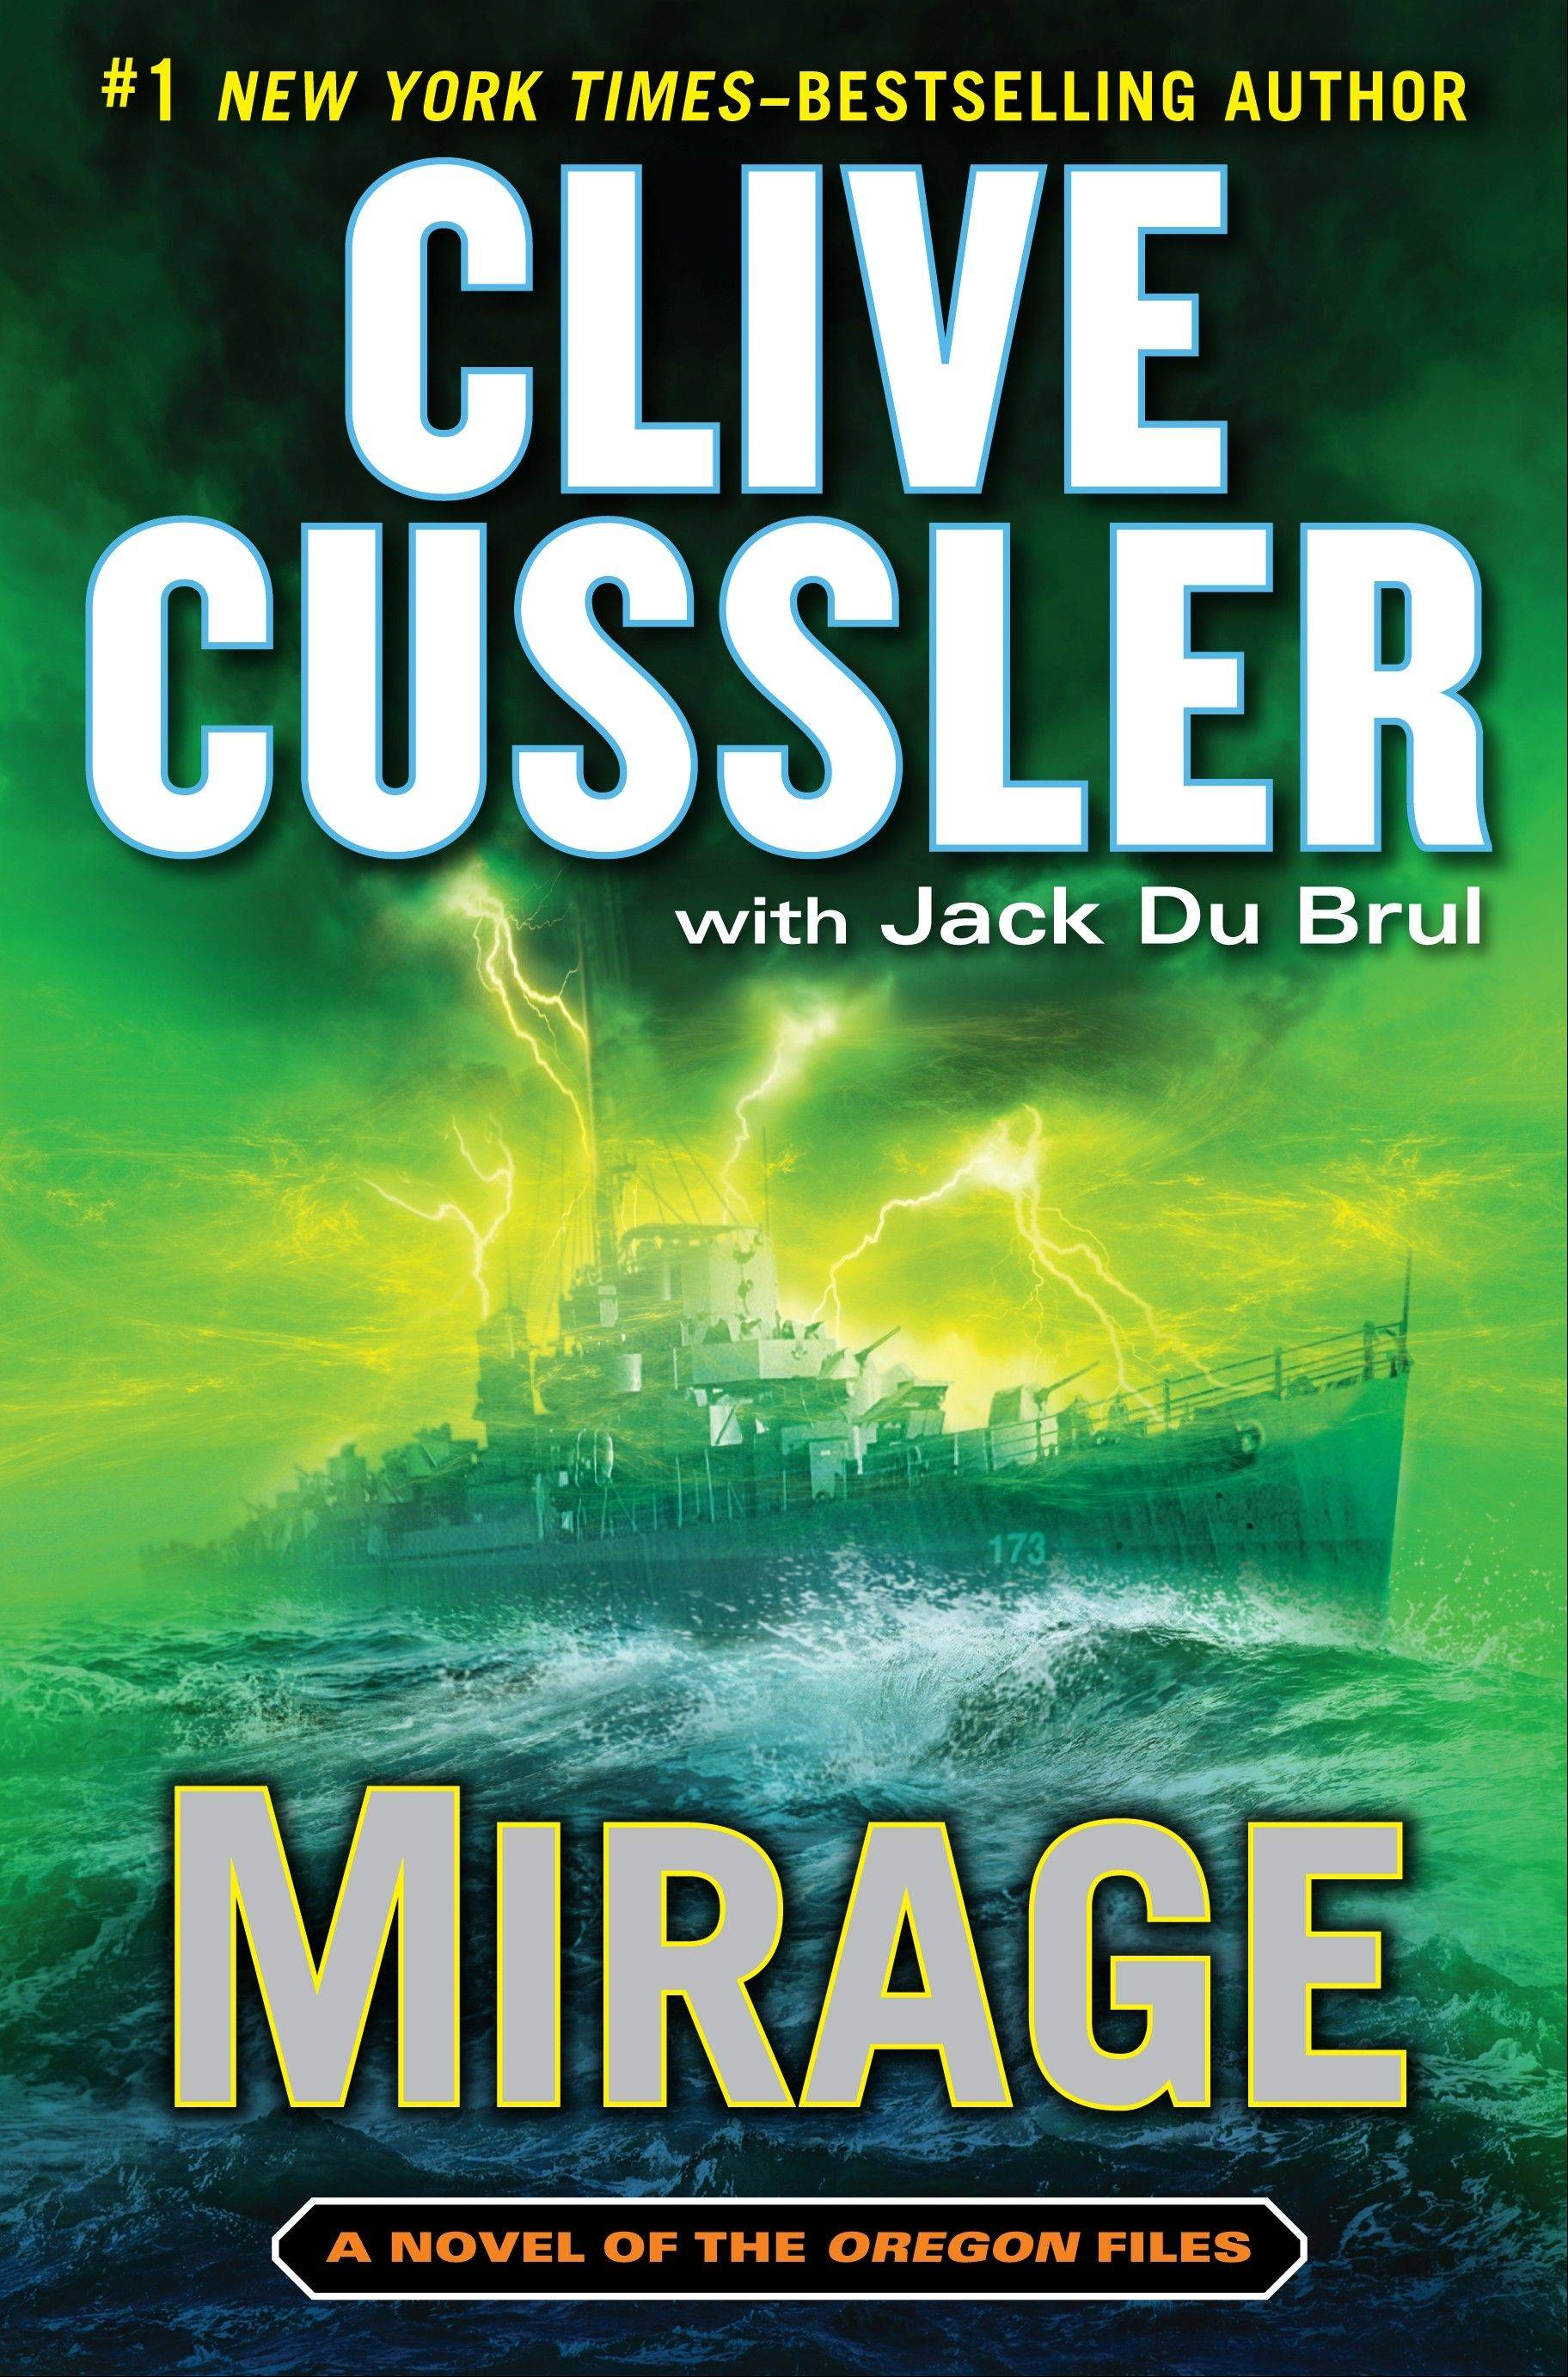 """Mirage"" is the latest book by Clive Cussler with Jack Du Brul."